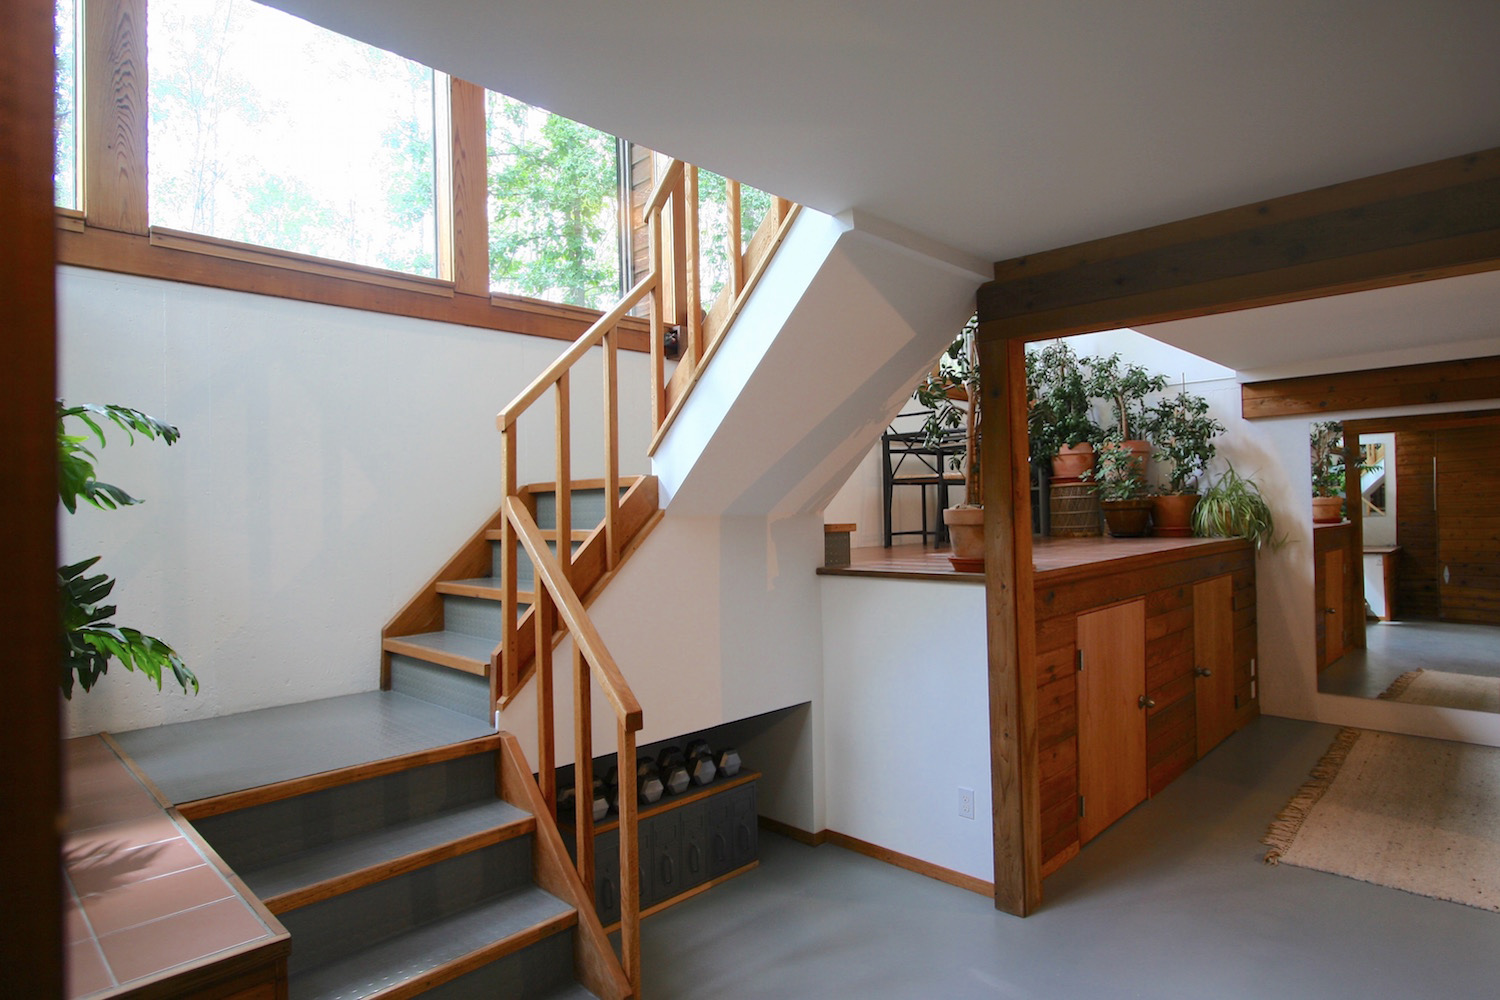 View (westward) of the lower level from the bottom of the stairs. Here you can see the two doors providing access to the substantial storage area below the larger  greenspace .